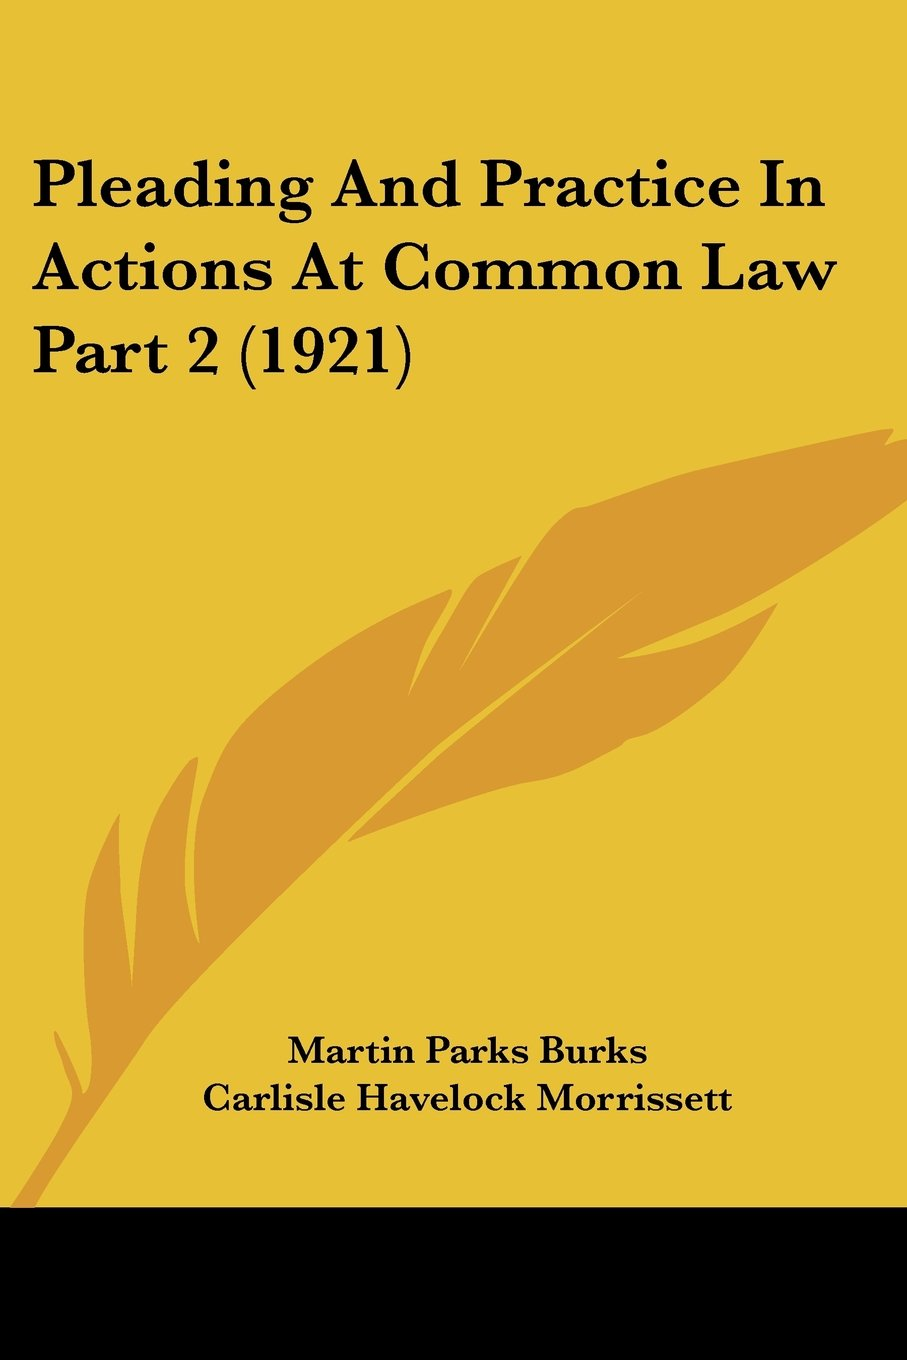 Pleading And Practice In Actions At Common Law Part 2 (1921) ebook